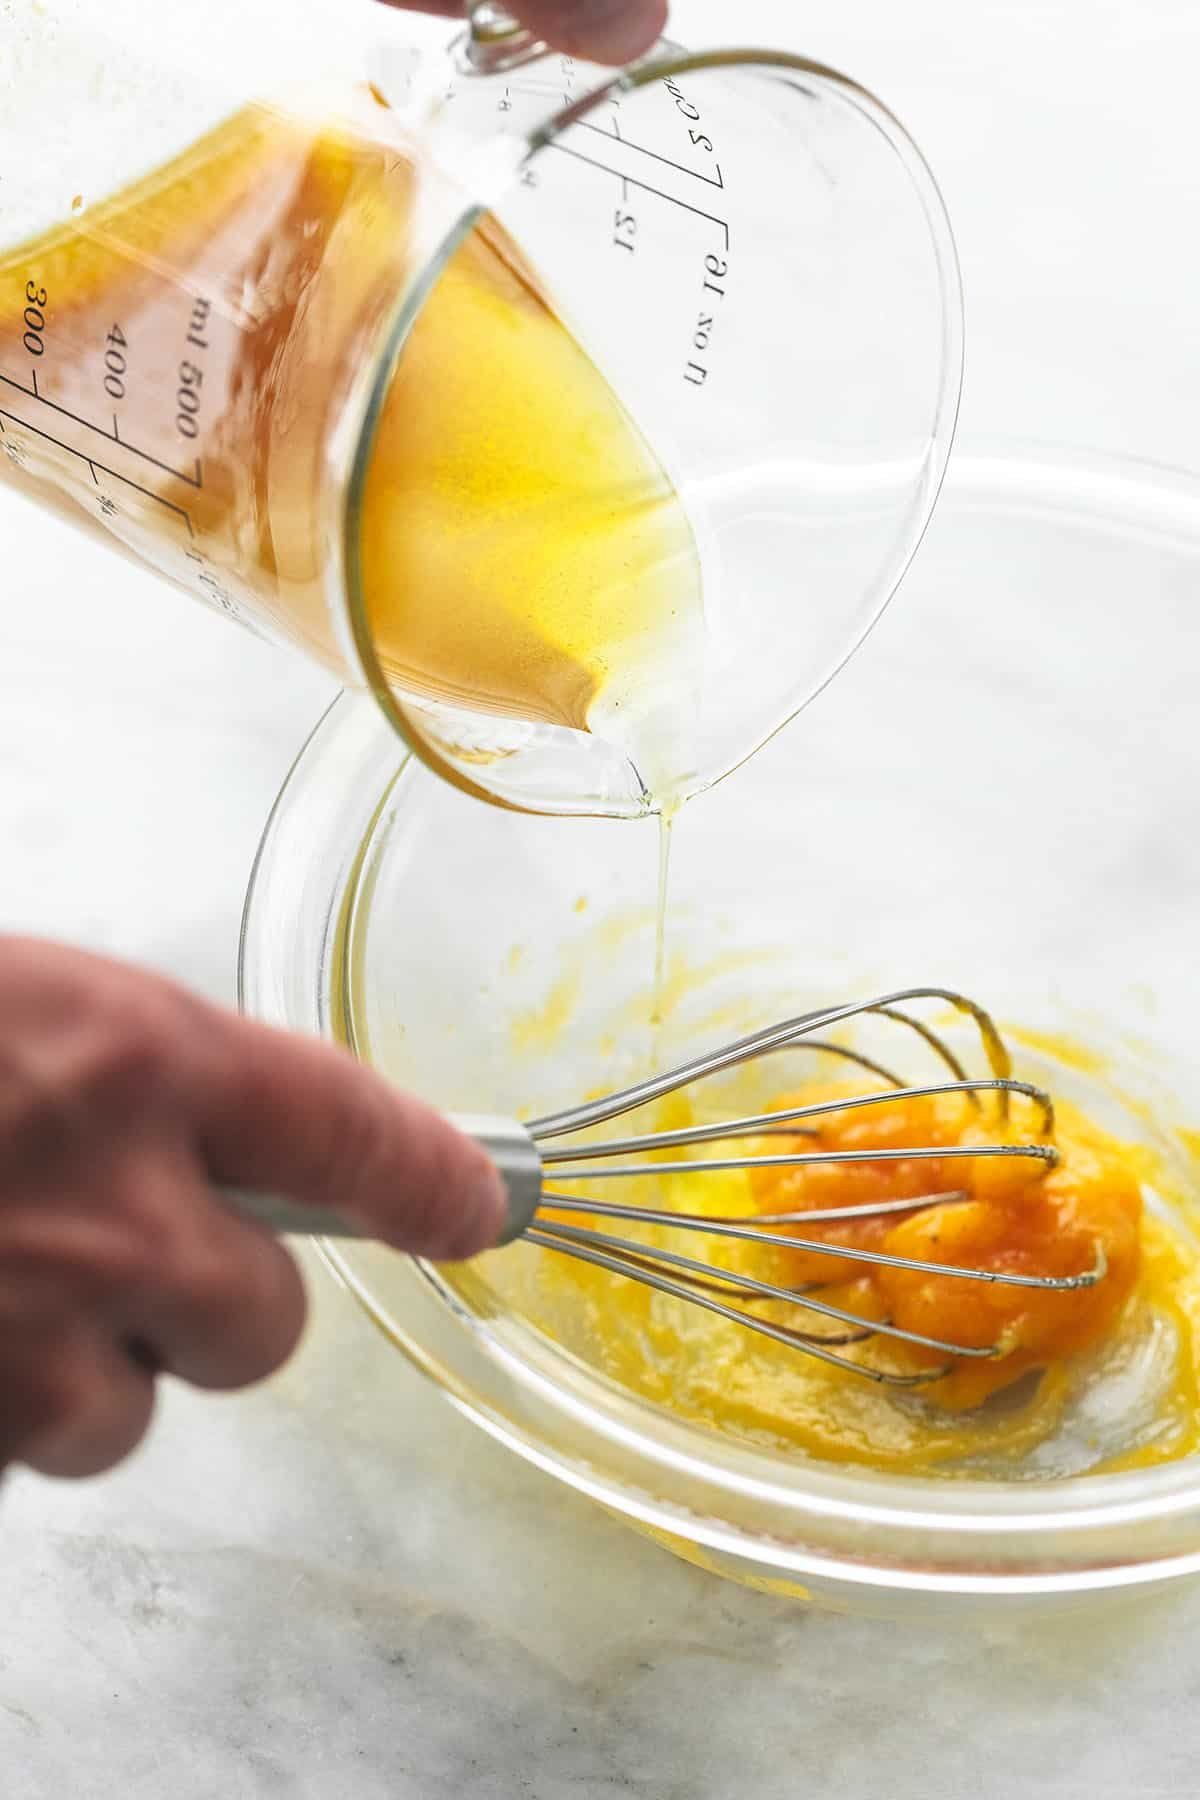 hands whisking egg yolks in glass bowl and pouring olive oil into bowl